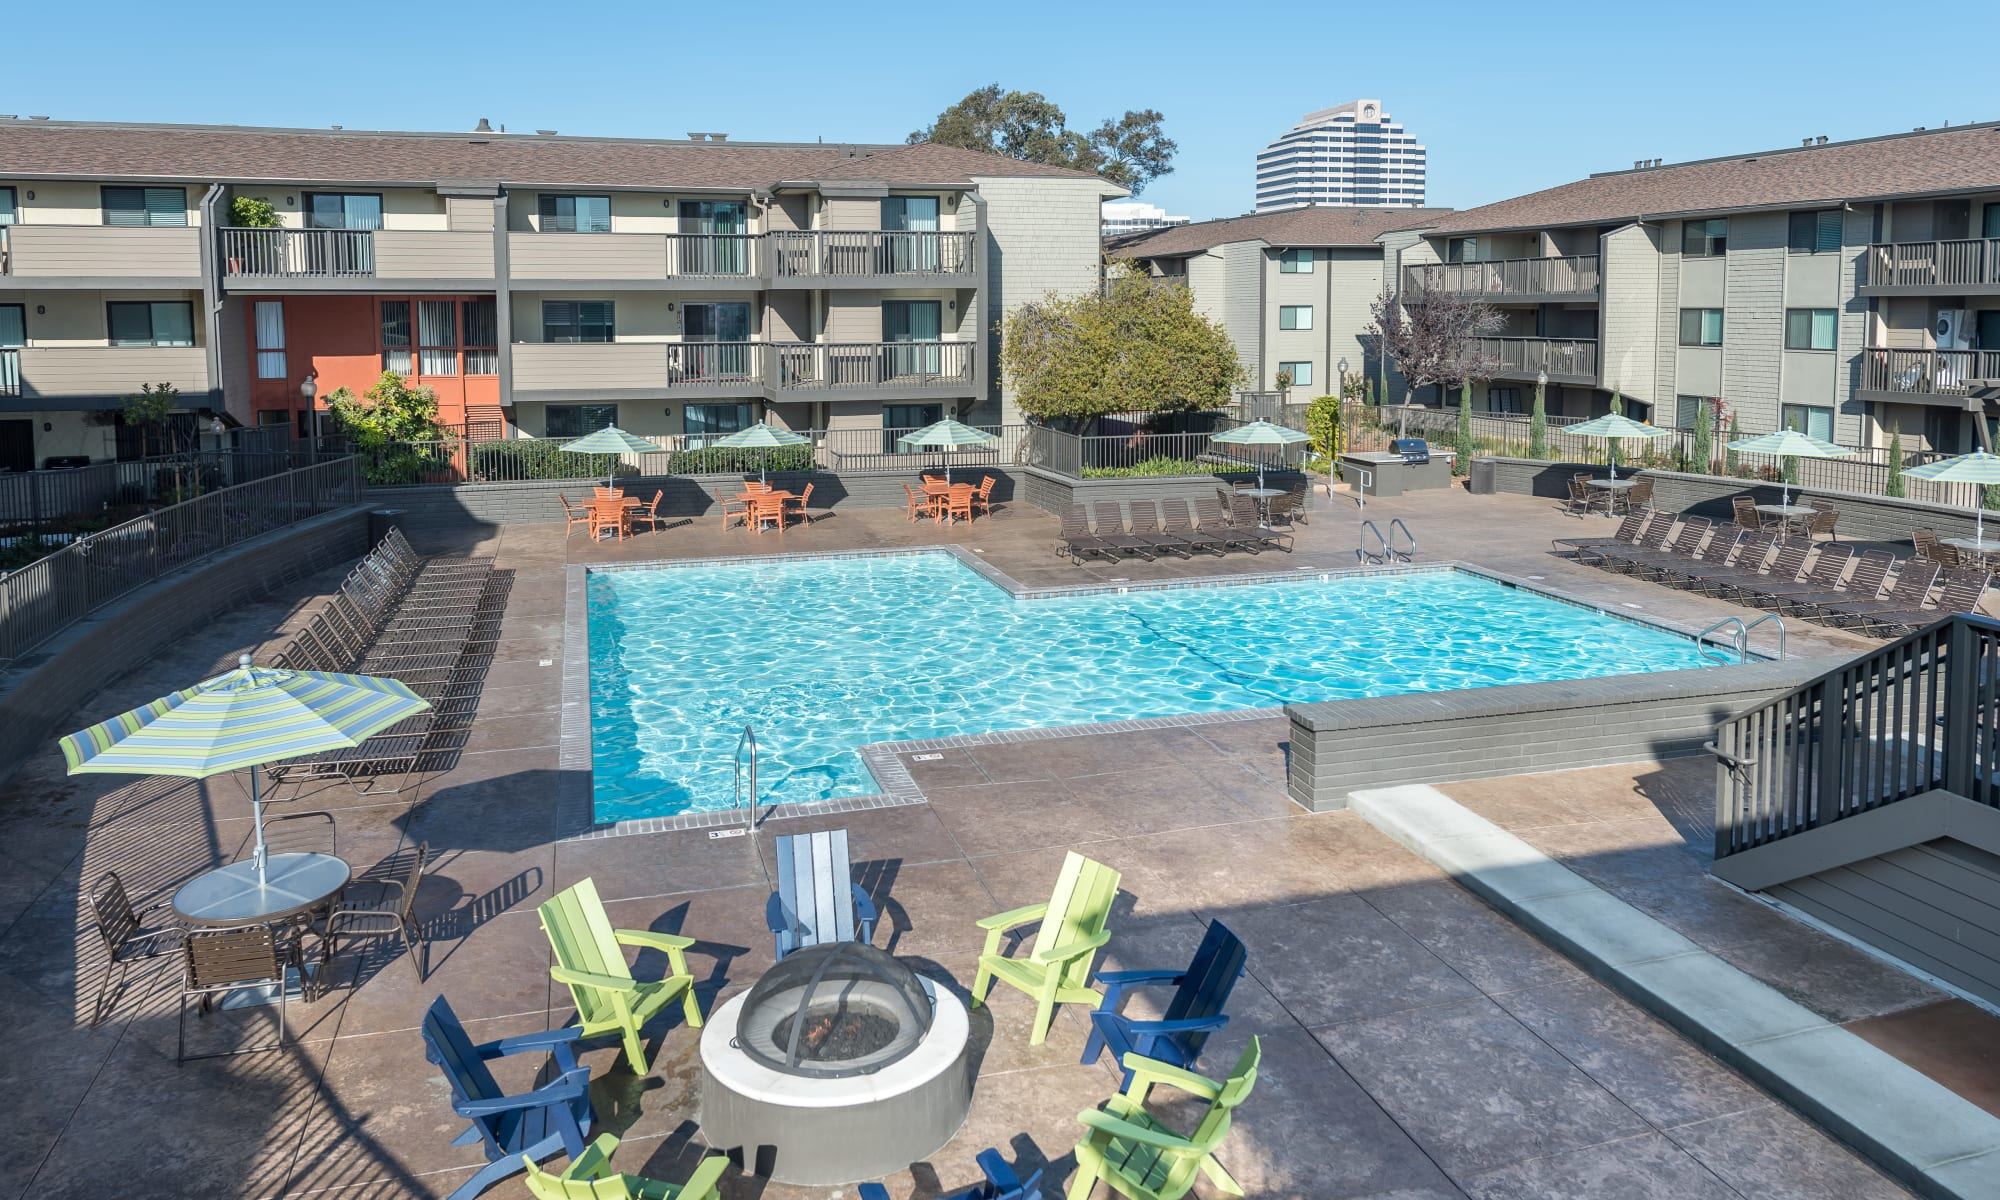 Harbor Cove Apartments in Foster City, California